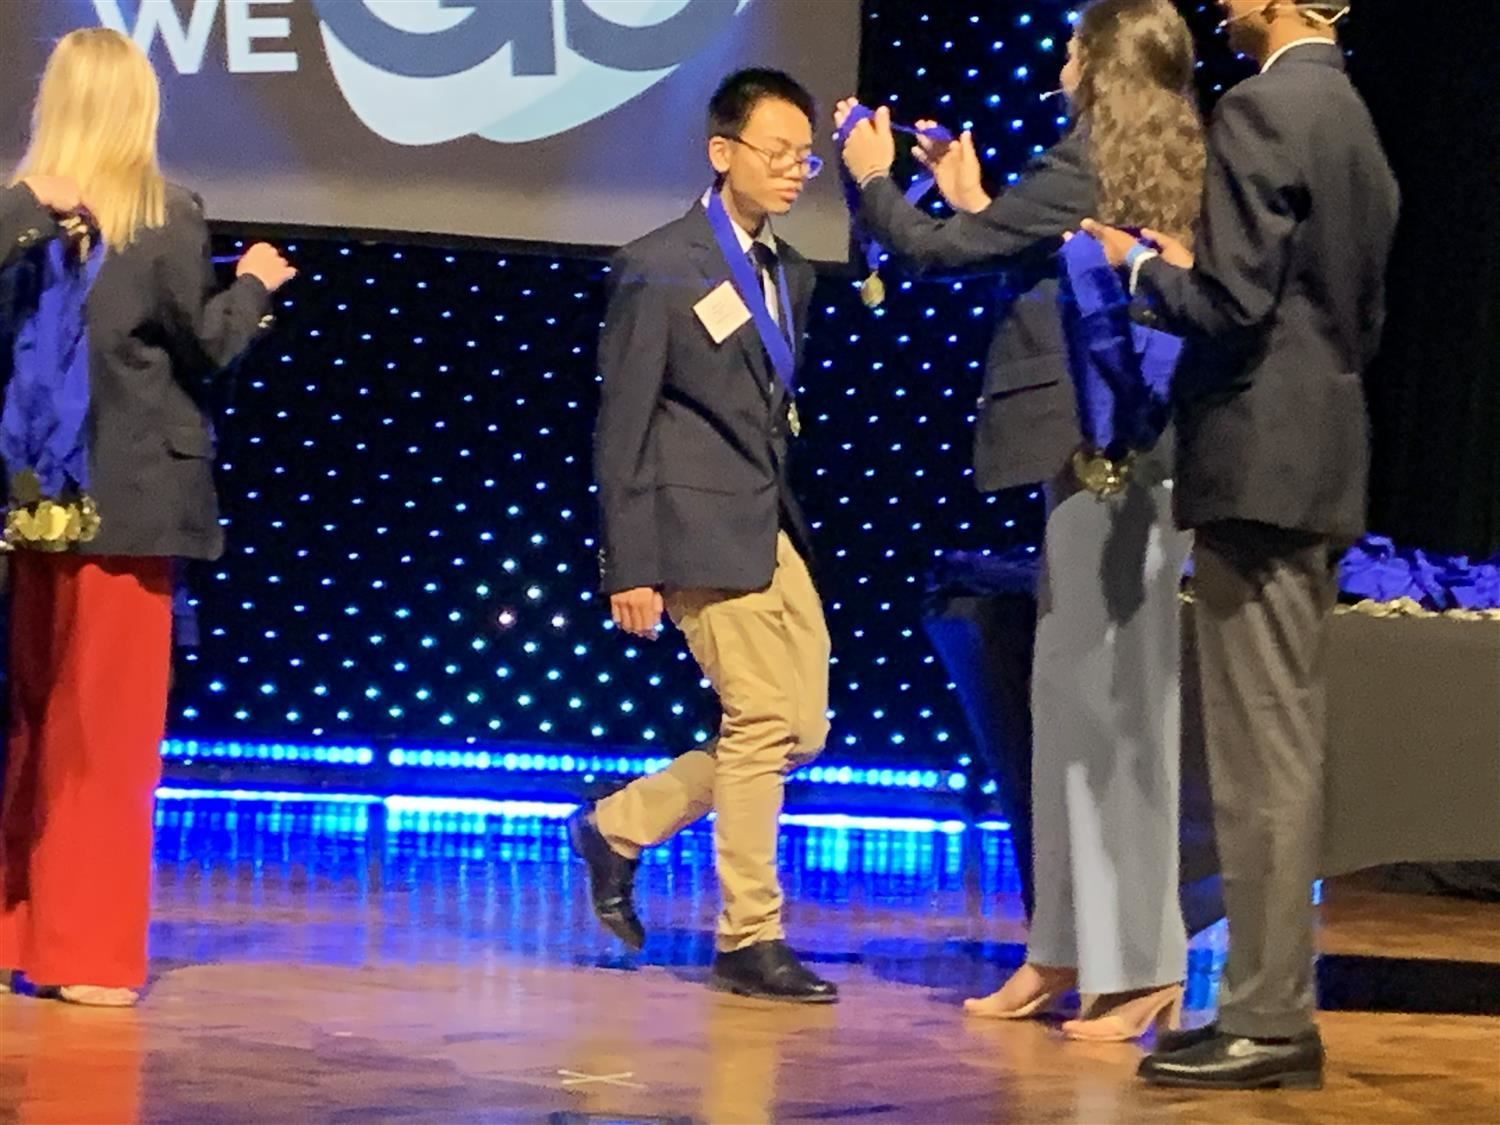 Oscar Liu places first in the accounting event at the DECA State Awards.